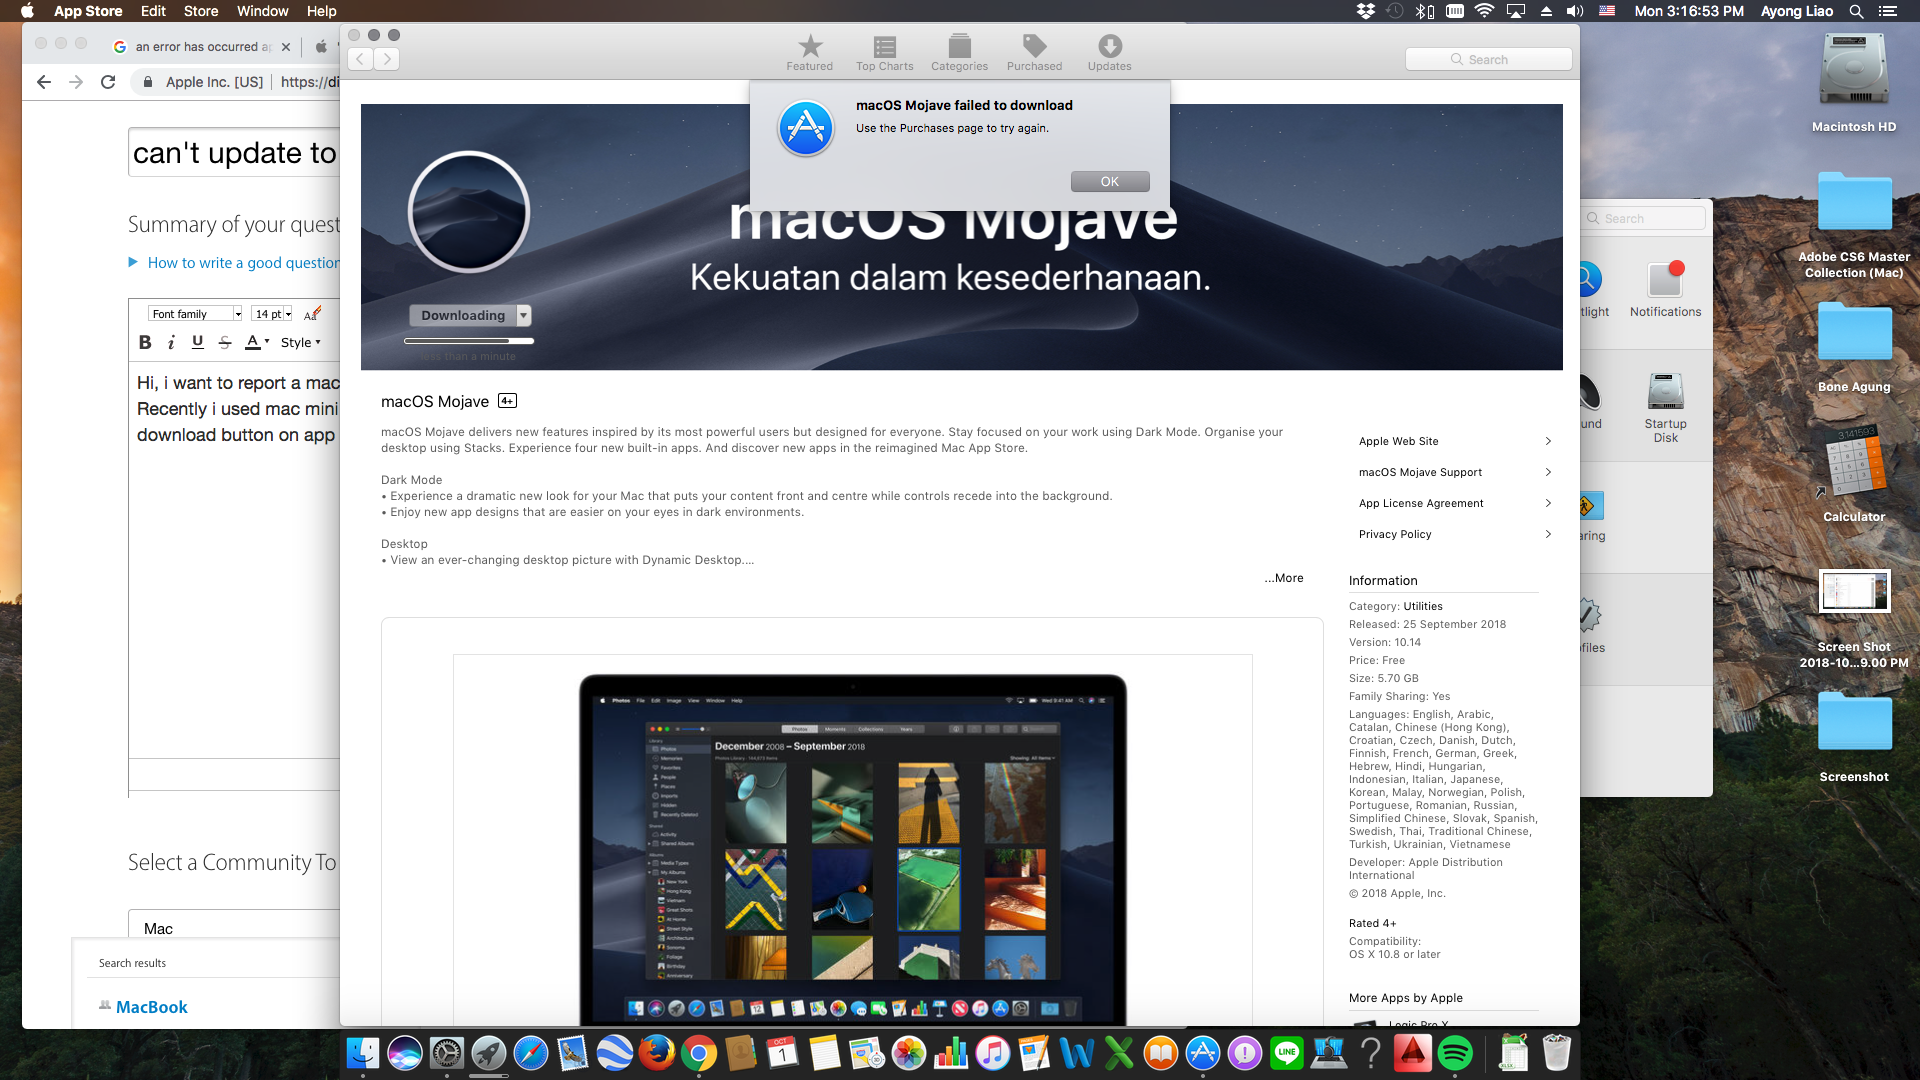 can't update to mac os mojave via app… - Apple Community